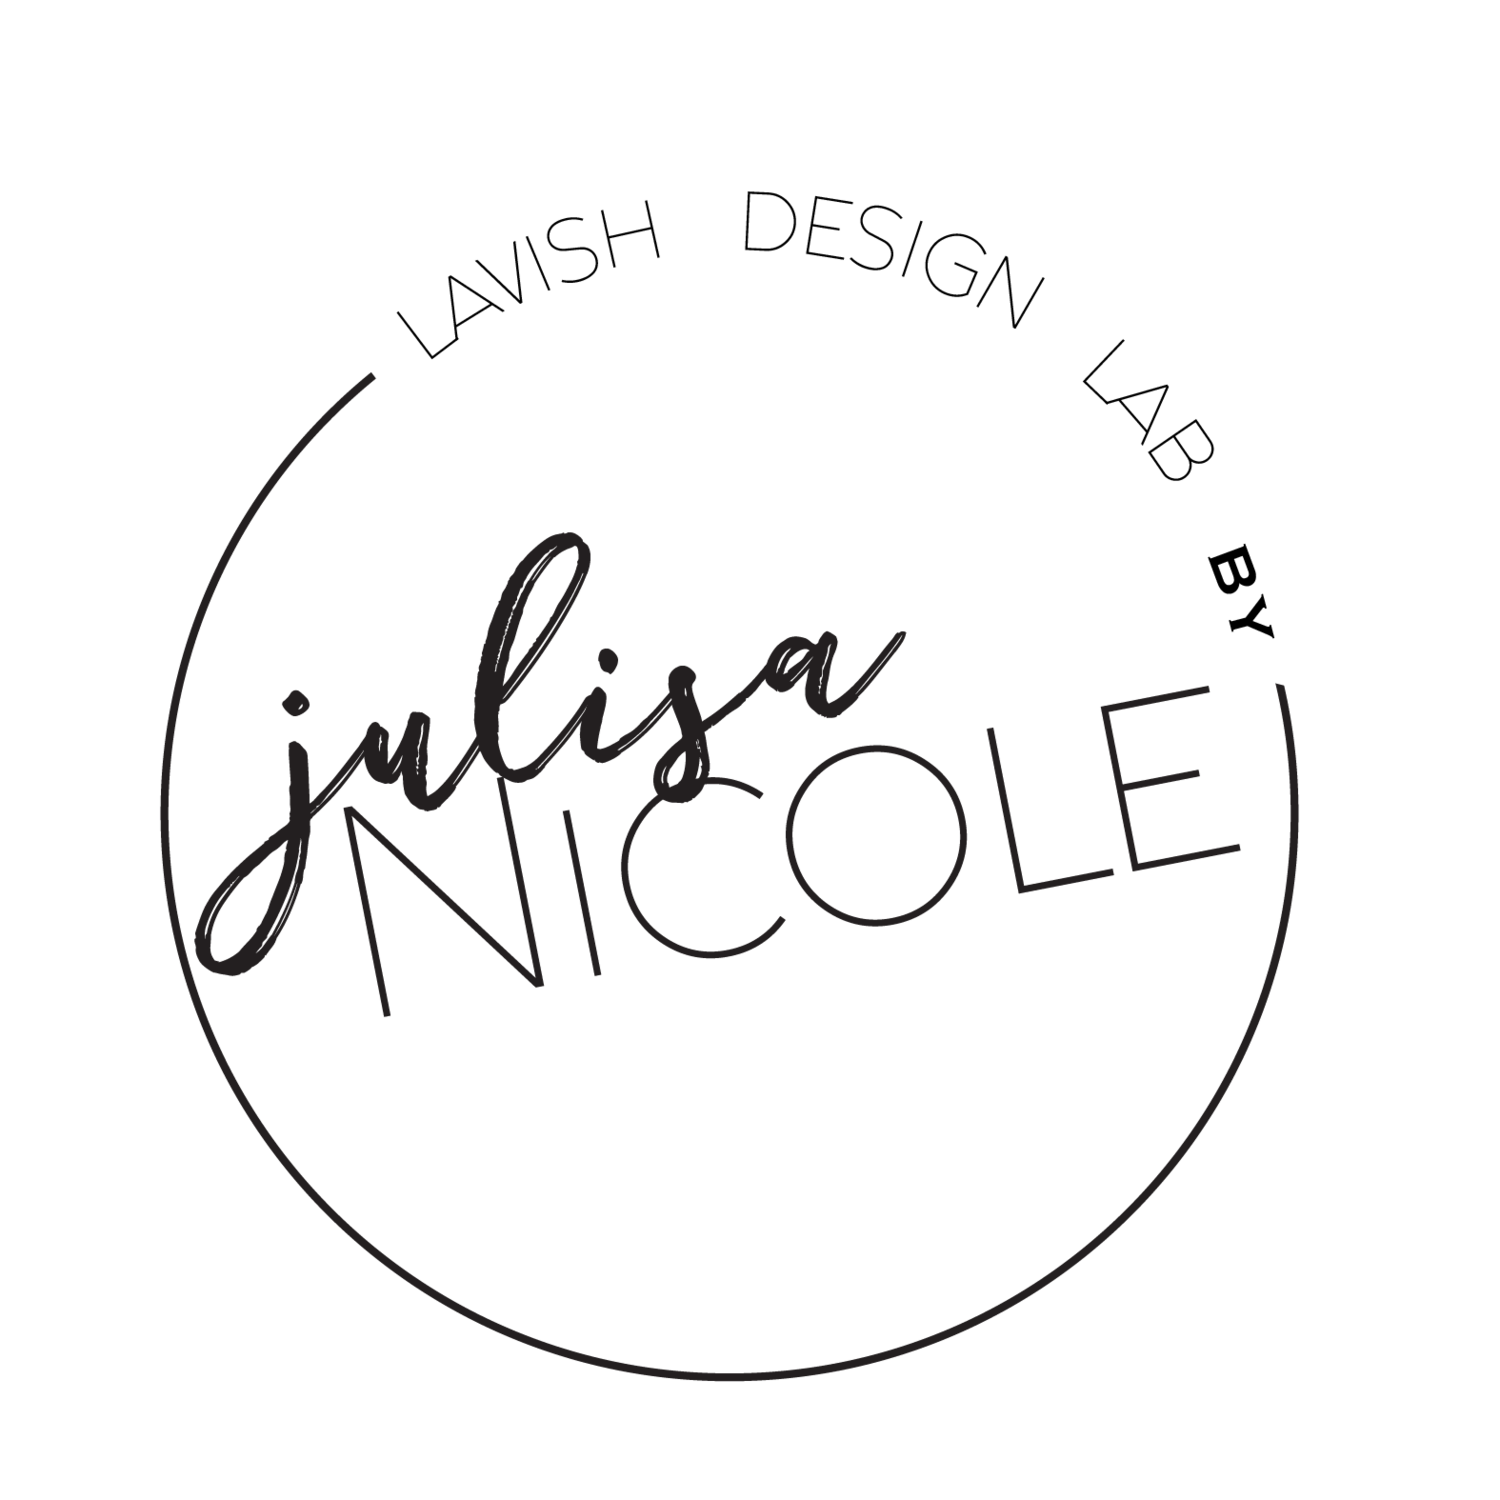 Lavish Design Lab